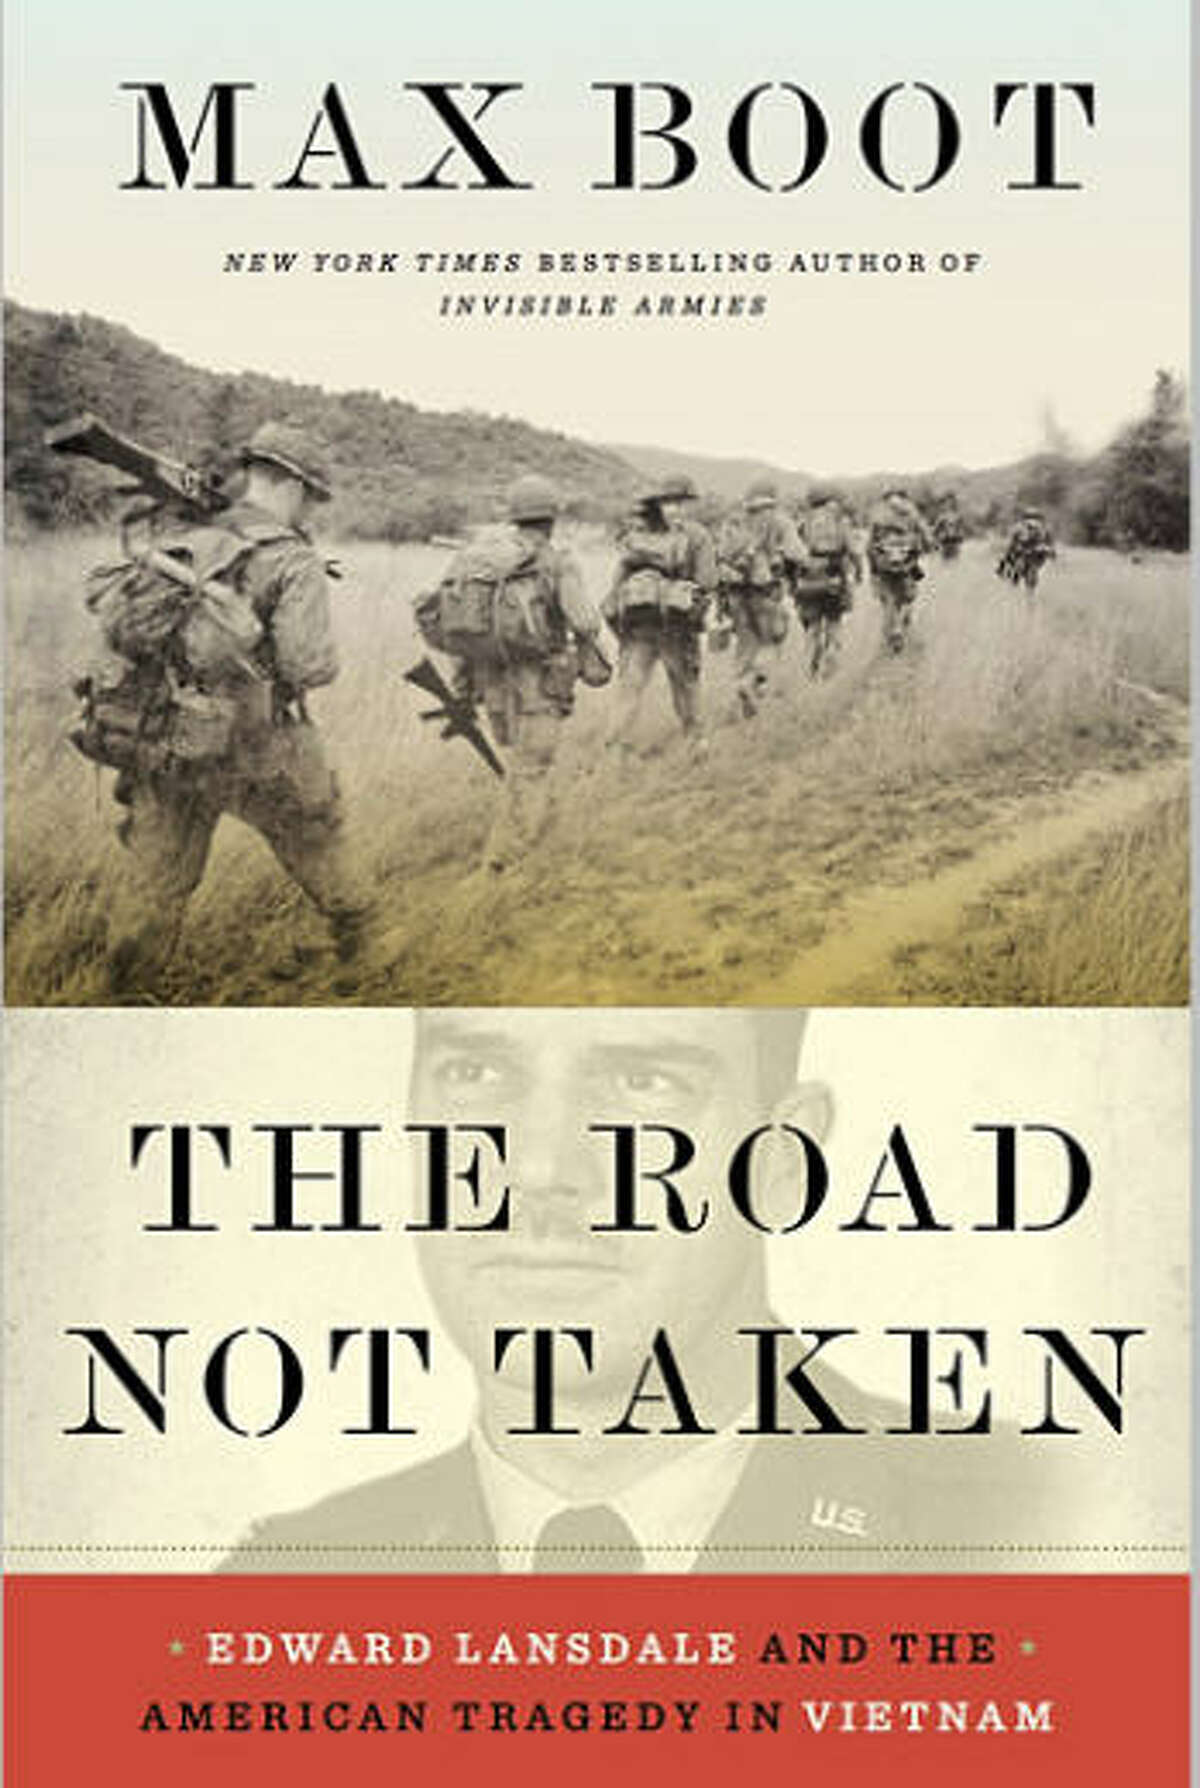 Cover of new biography of Maj. Gen. Edward Lansdale, a major figure of the Cold War era.